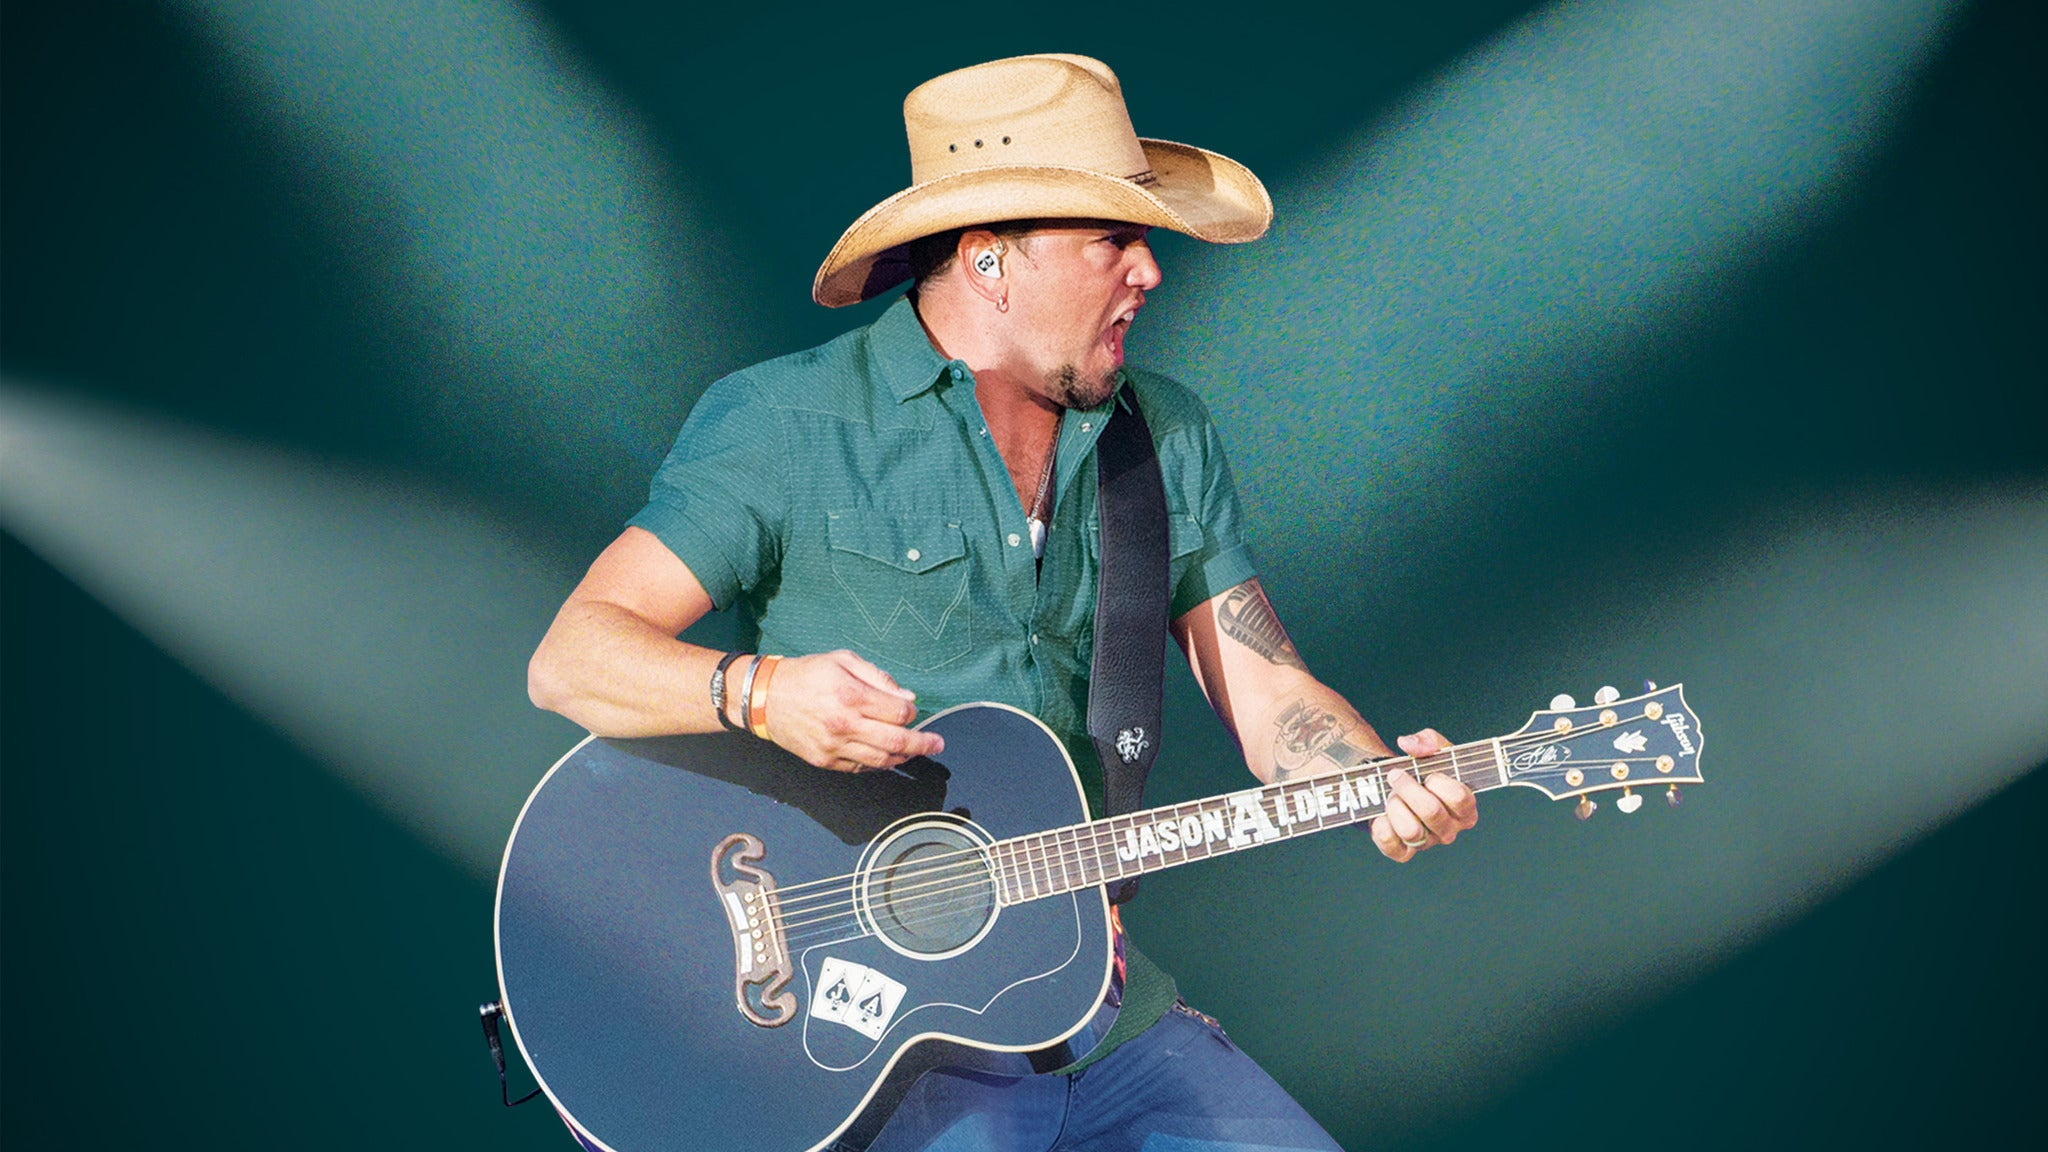 Jason Aldean - They Don't Know Tour at Verizon Arena